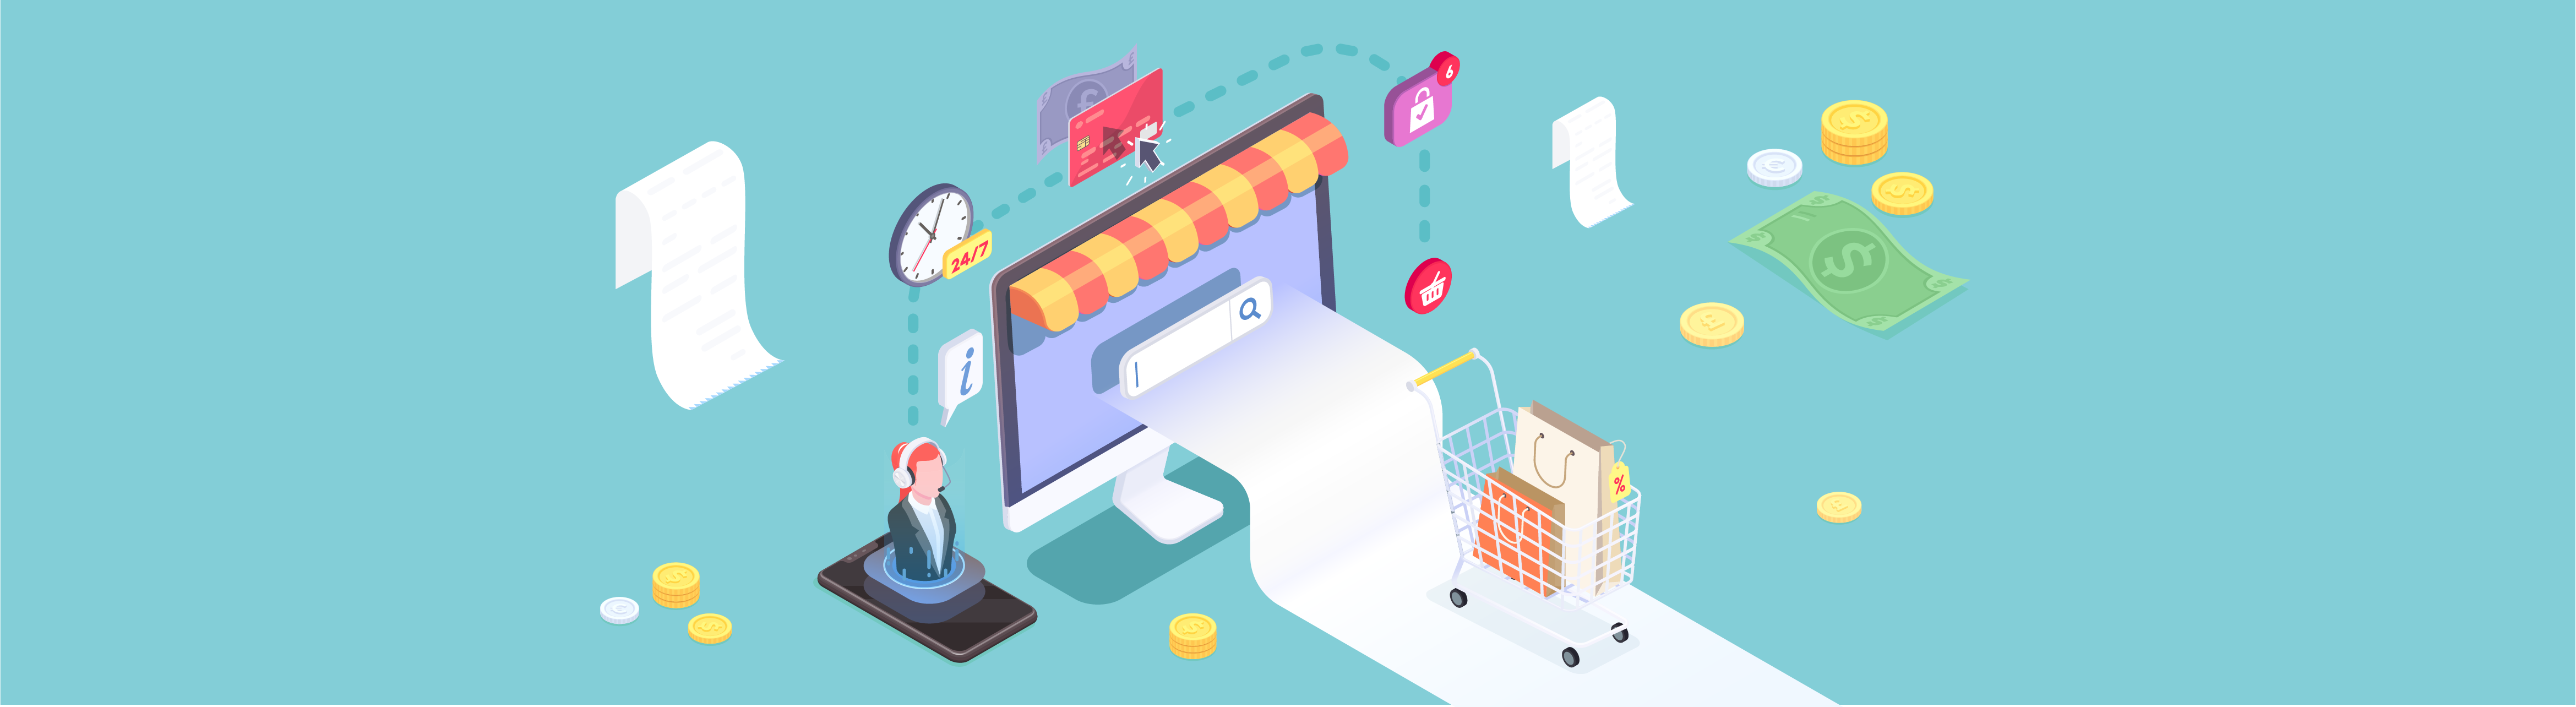 Illustrations of online shopping activities